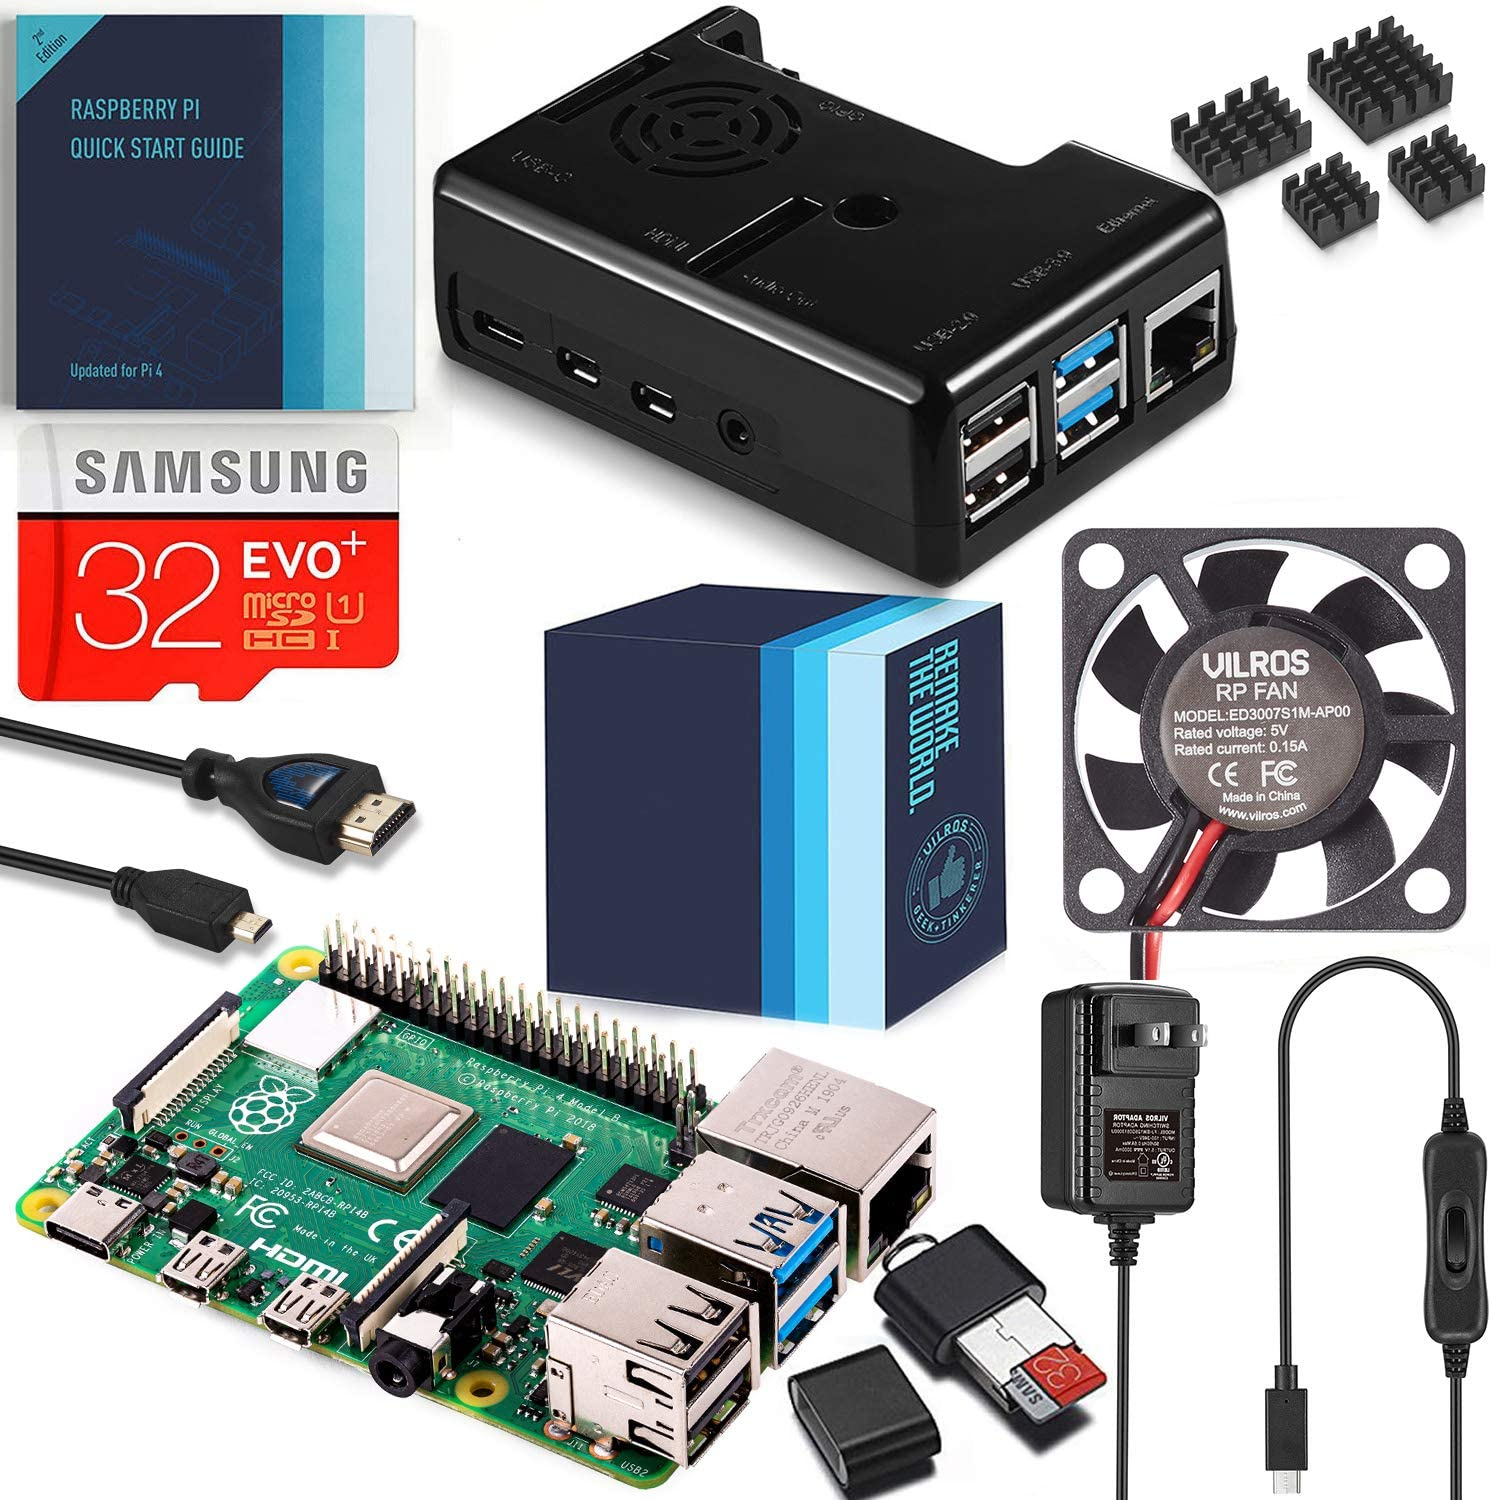 Vilros Raspberry Pi 4 Complete Kit with Black Fan Cooled Case (2GB)